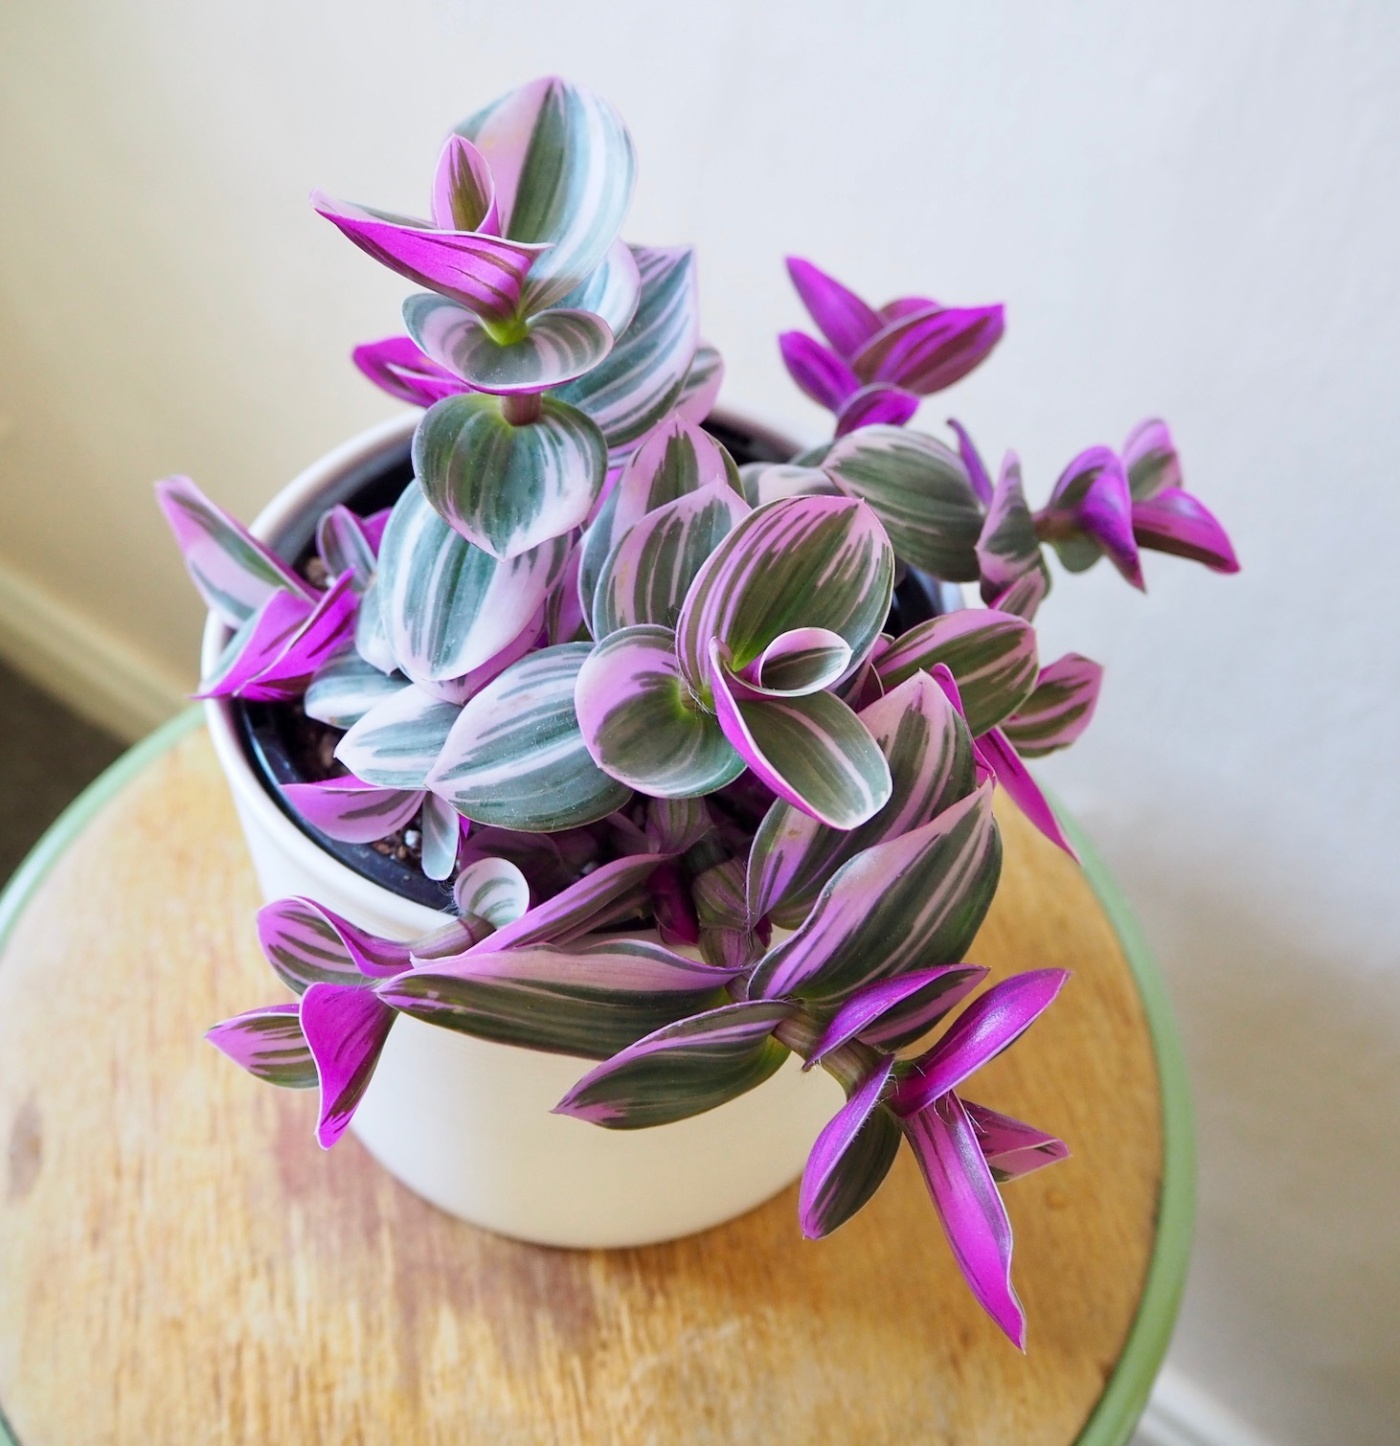 Tradescantia Pink Nanouk – Hottest Houseplant Right Now! (Trending)